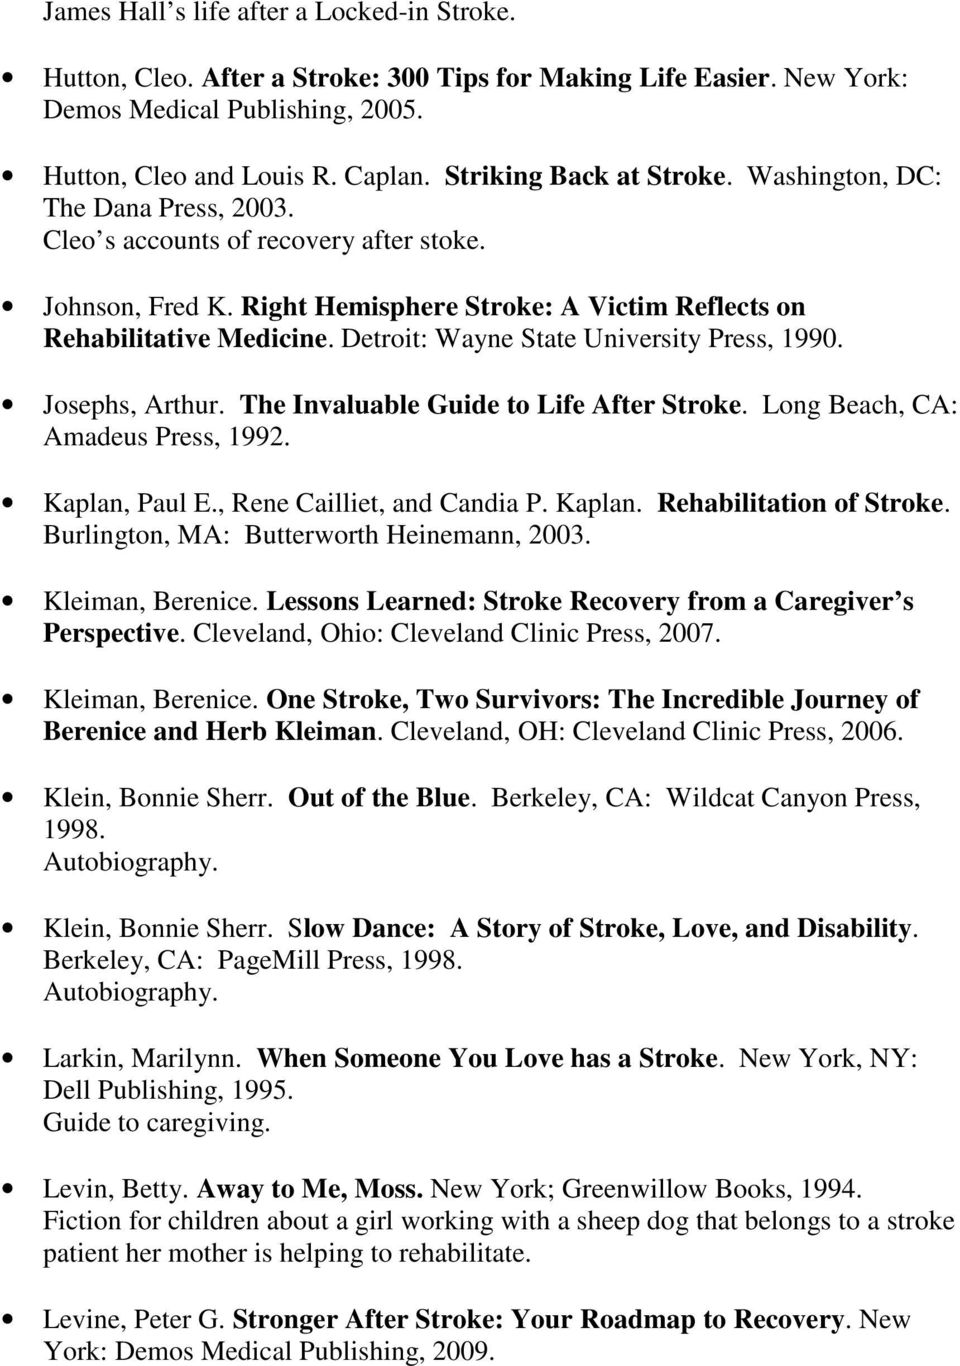 Detroit: Wayne State University Press, 1990. Josephs, Arthur. The Invaluable Guide to Life After Stroke. Long Beach, CA: Amadeus Press, 1992. Kaplan, Paul E., Rene Cailliet, and Candia P. Kaplan. Rehabilitation of Stroke.